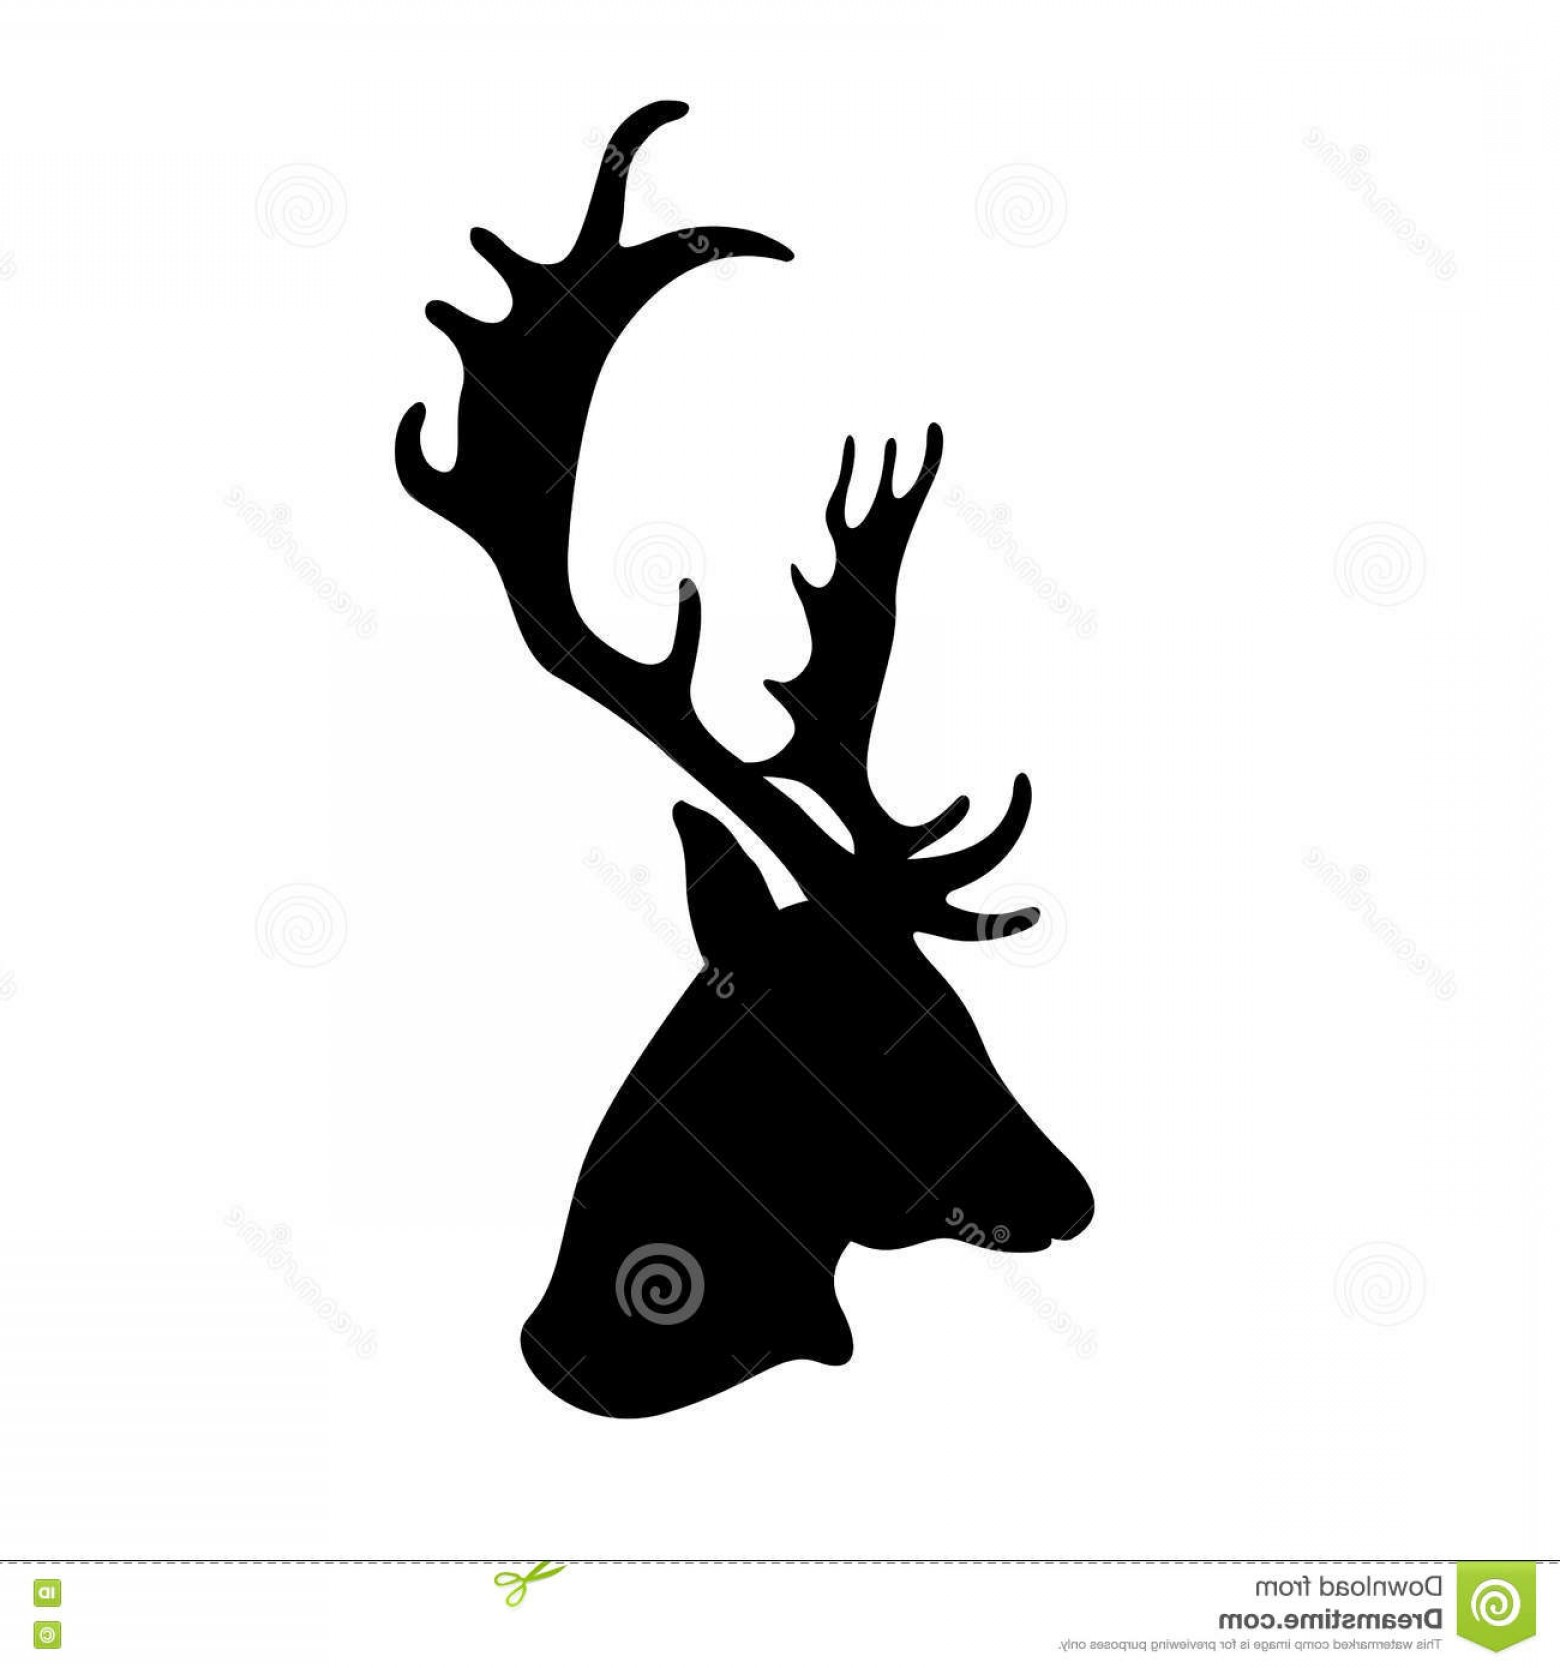 Black And White Holiday Deer Vector: Stock Illustration Deer Head Vector Black Silhouette Illustration Image